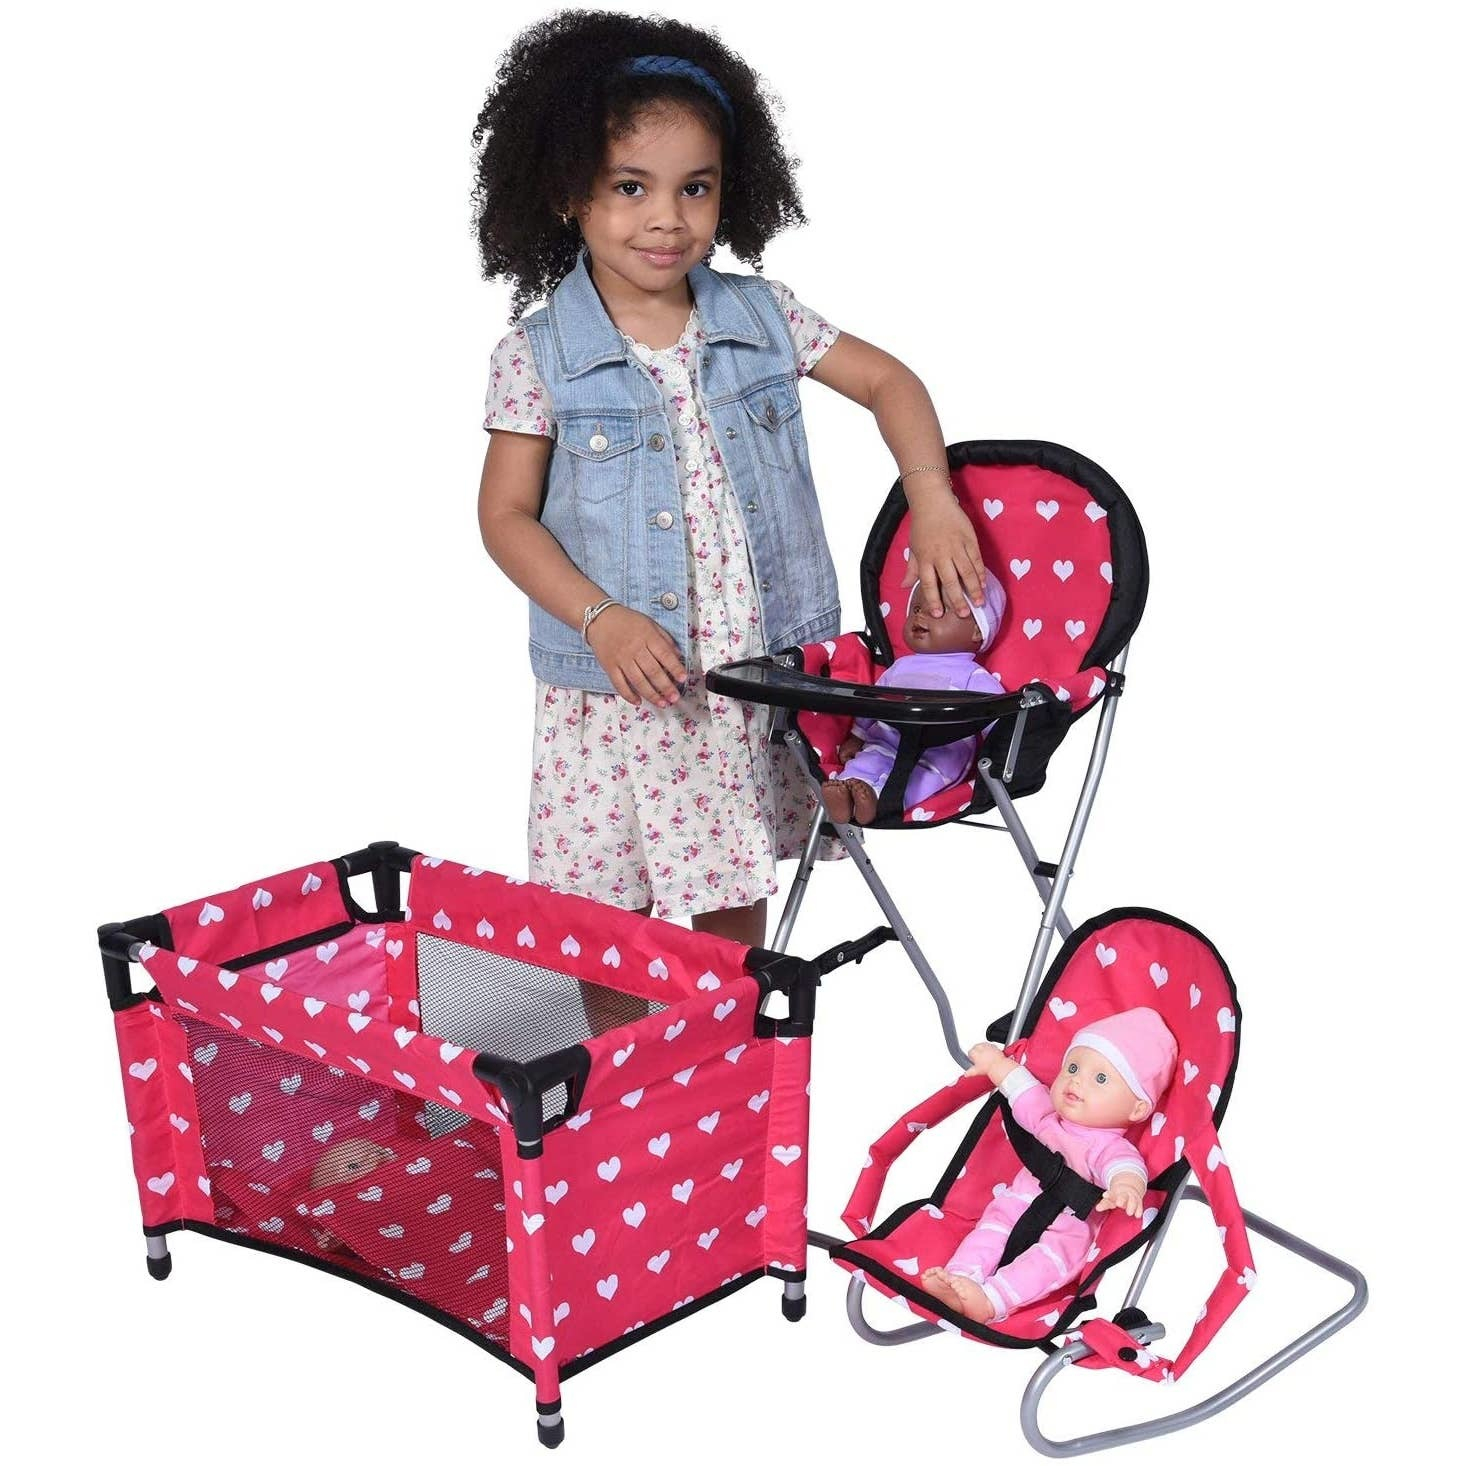 The New York Doll Collection Dolls Mega Play set with High Chair, Bouncer and Pack N Play